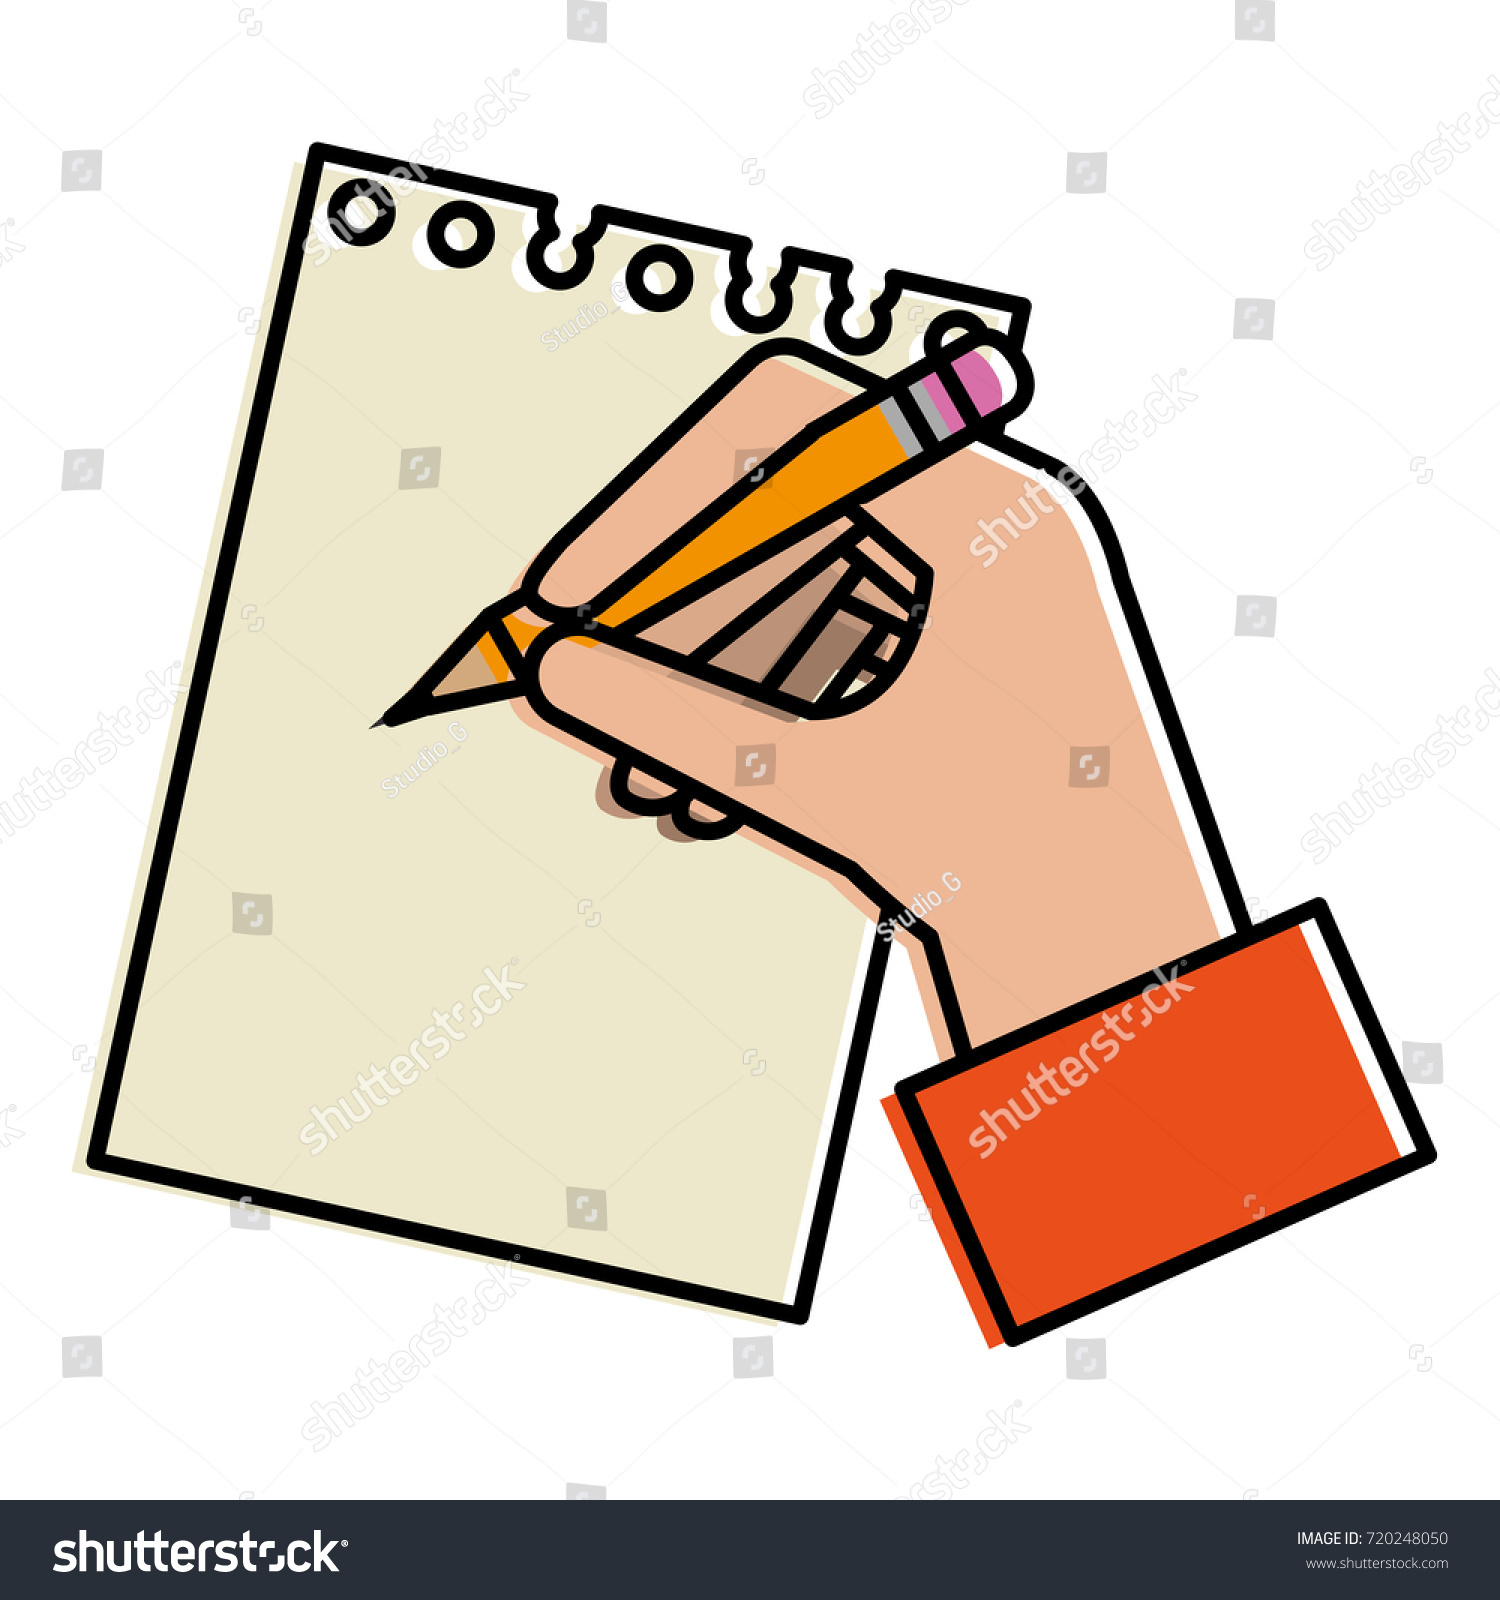 hand human pencil writing notebook stock vector (royalty free